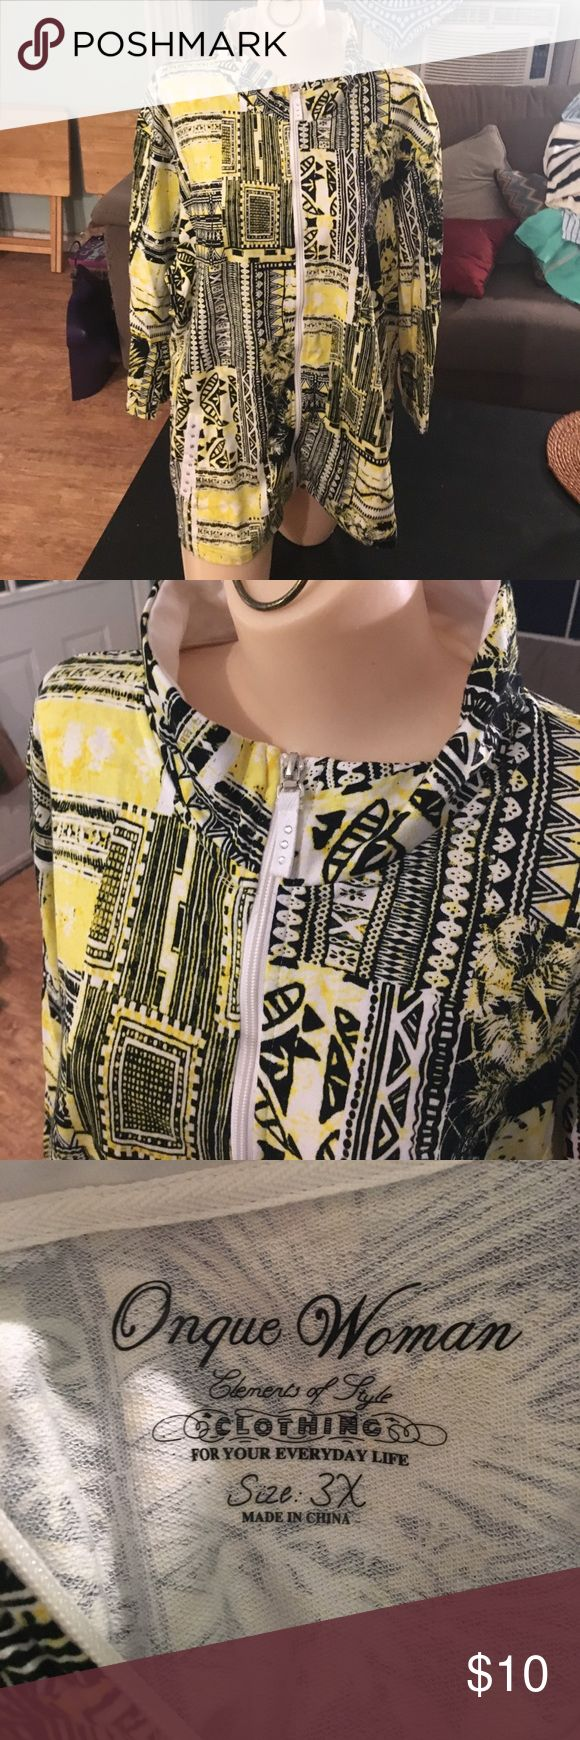 Oneque Woman light  yellow/black/white jacket Great jacket. Great design and color. Oneque Woman Elements of Style. size 3X. Black and white with yellow. 100% cotton Onque Woman Tops Sweatshirts & Hoodies